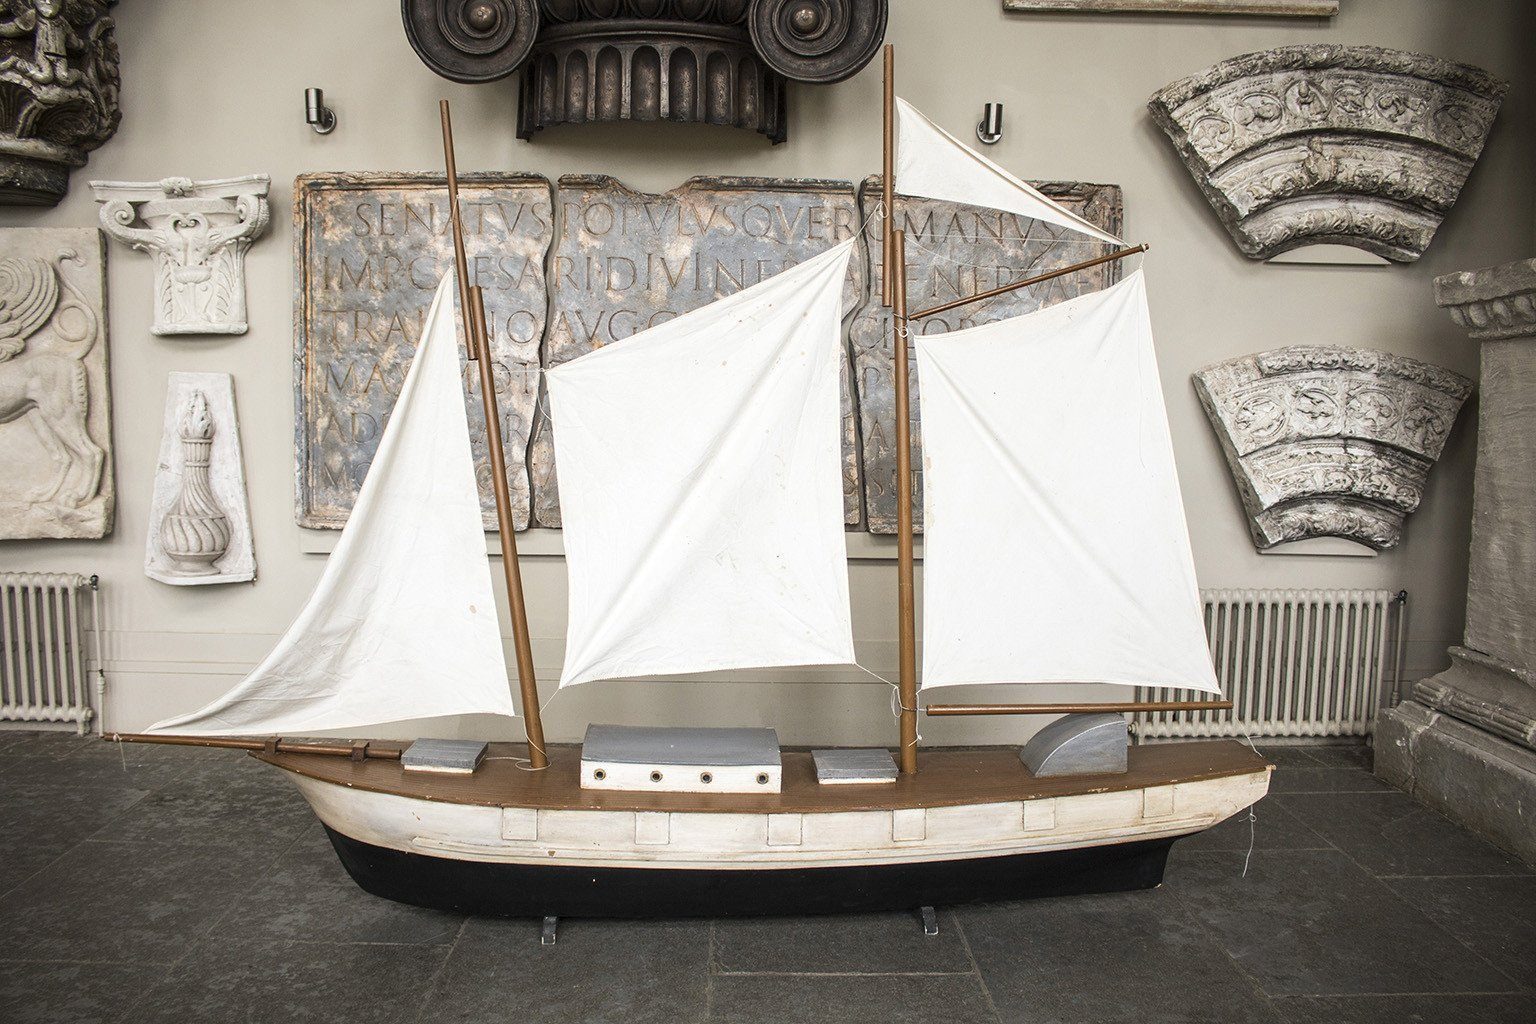 Monumental Hand-Painted Model Boat Maquette